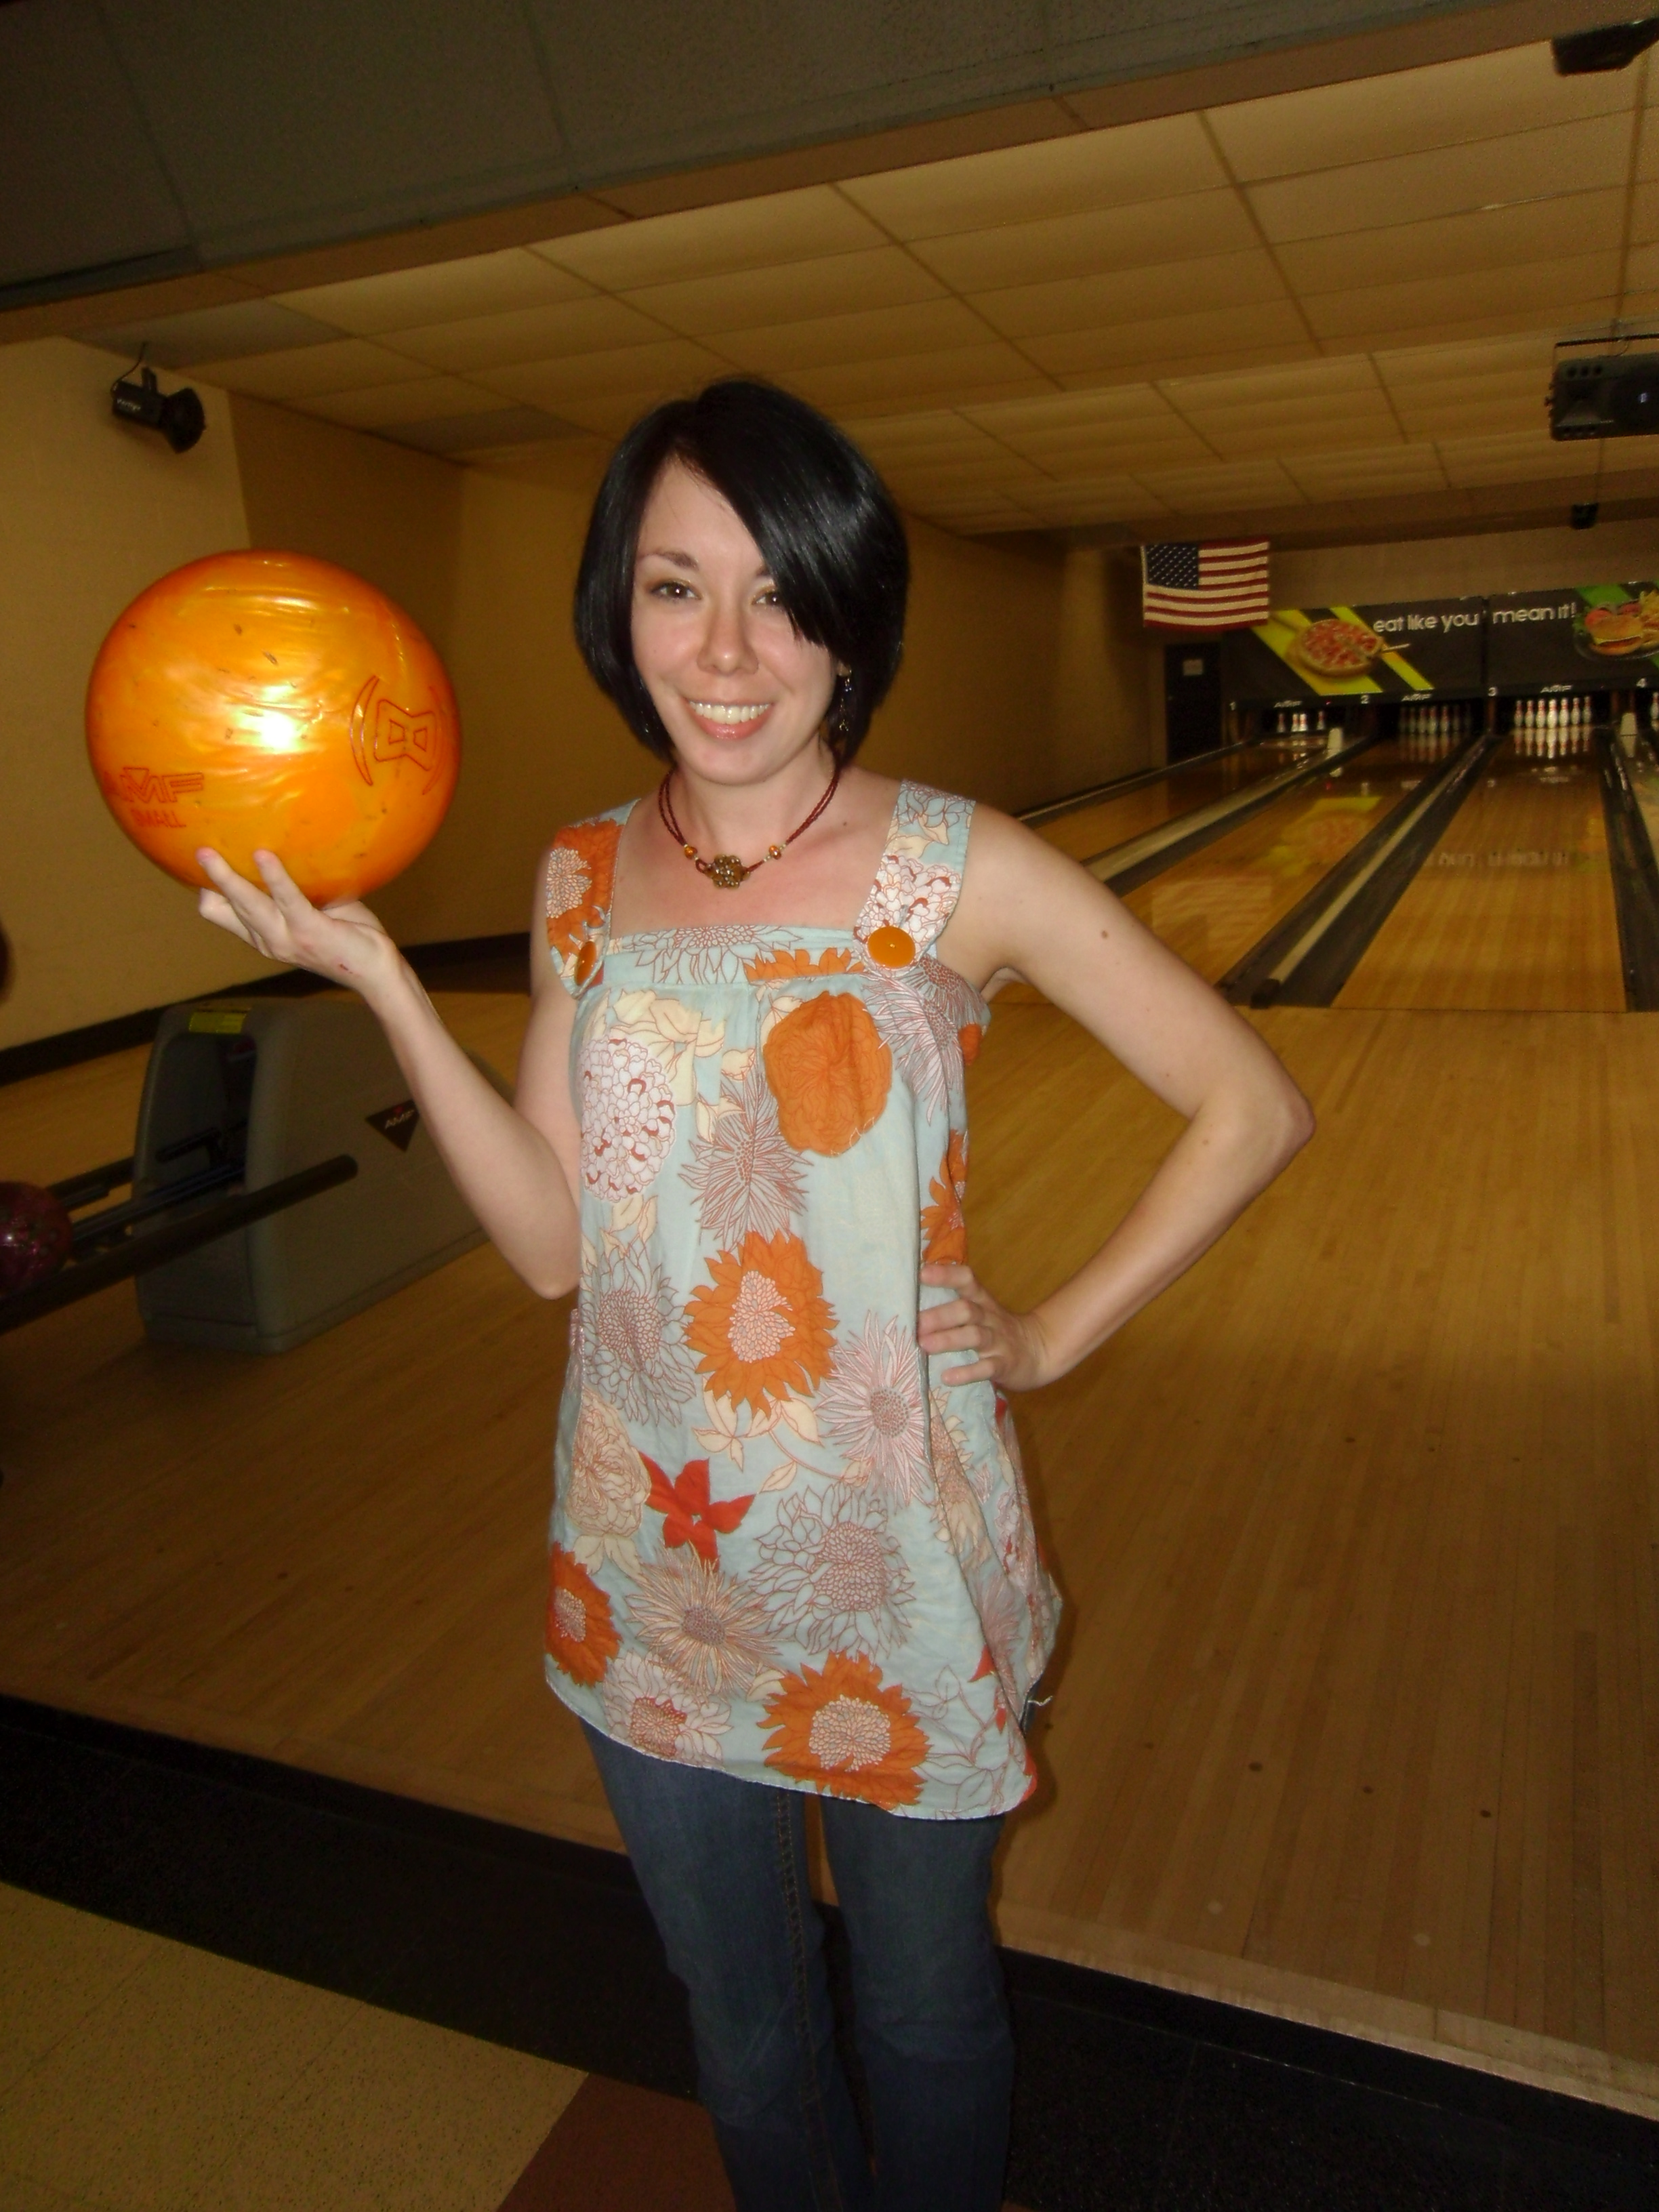 Day 97:  Bowl me over Top 5